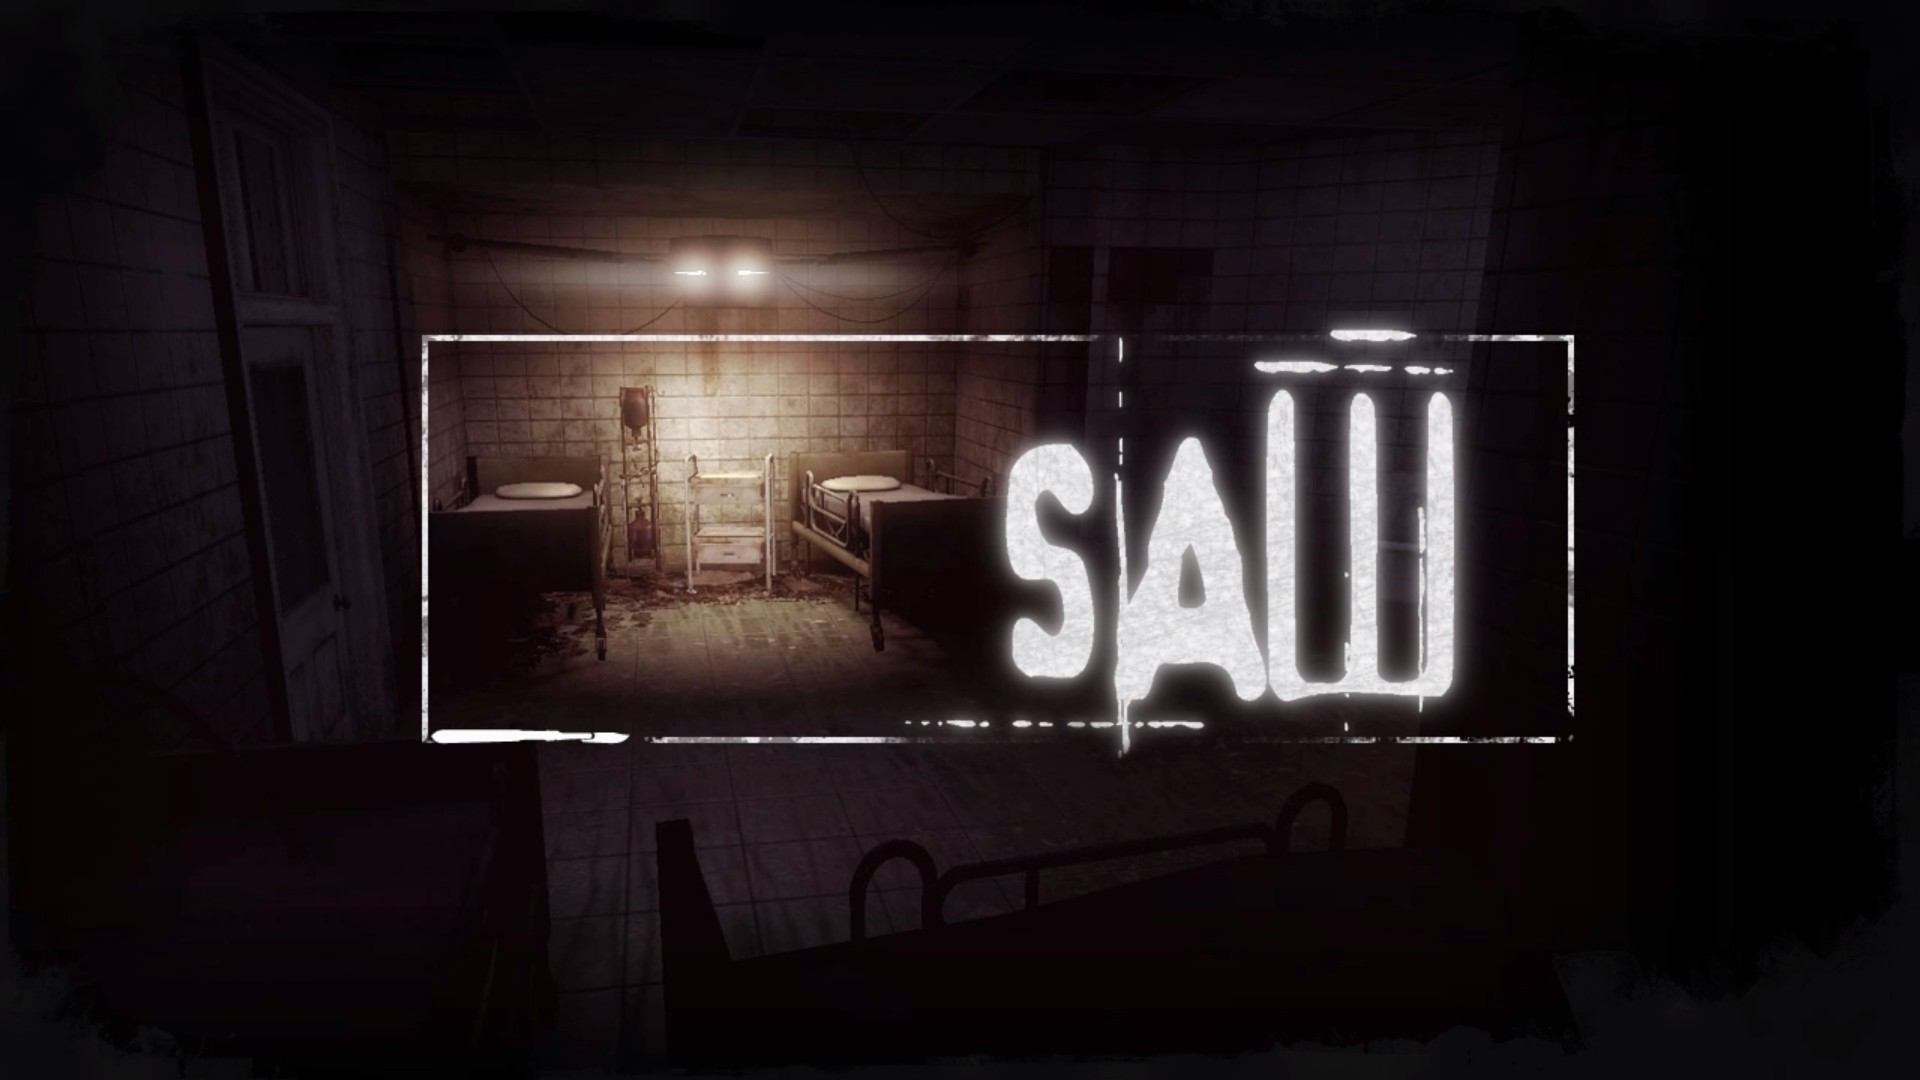 Saw: The Videogame (STEAM KEY ROW / REGION FREE)